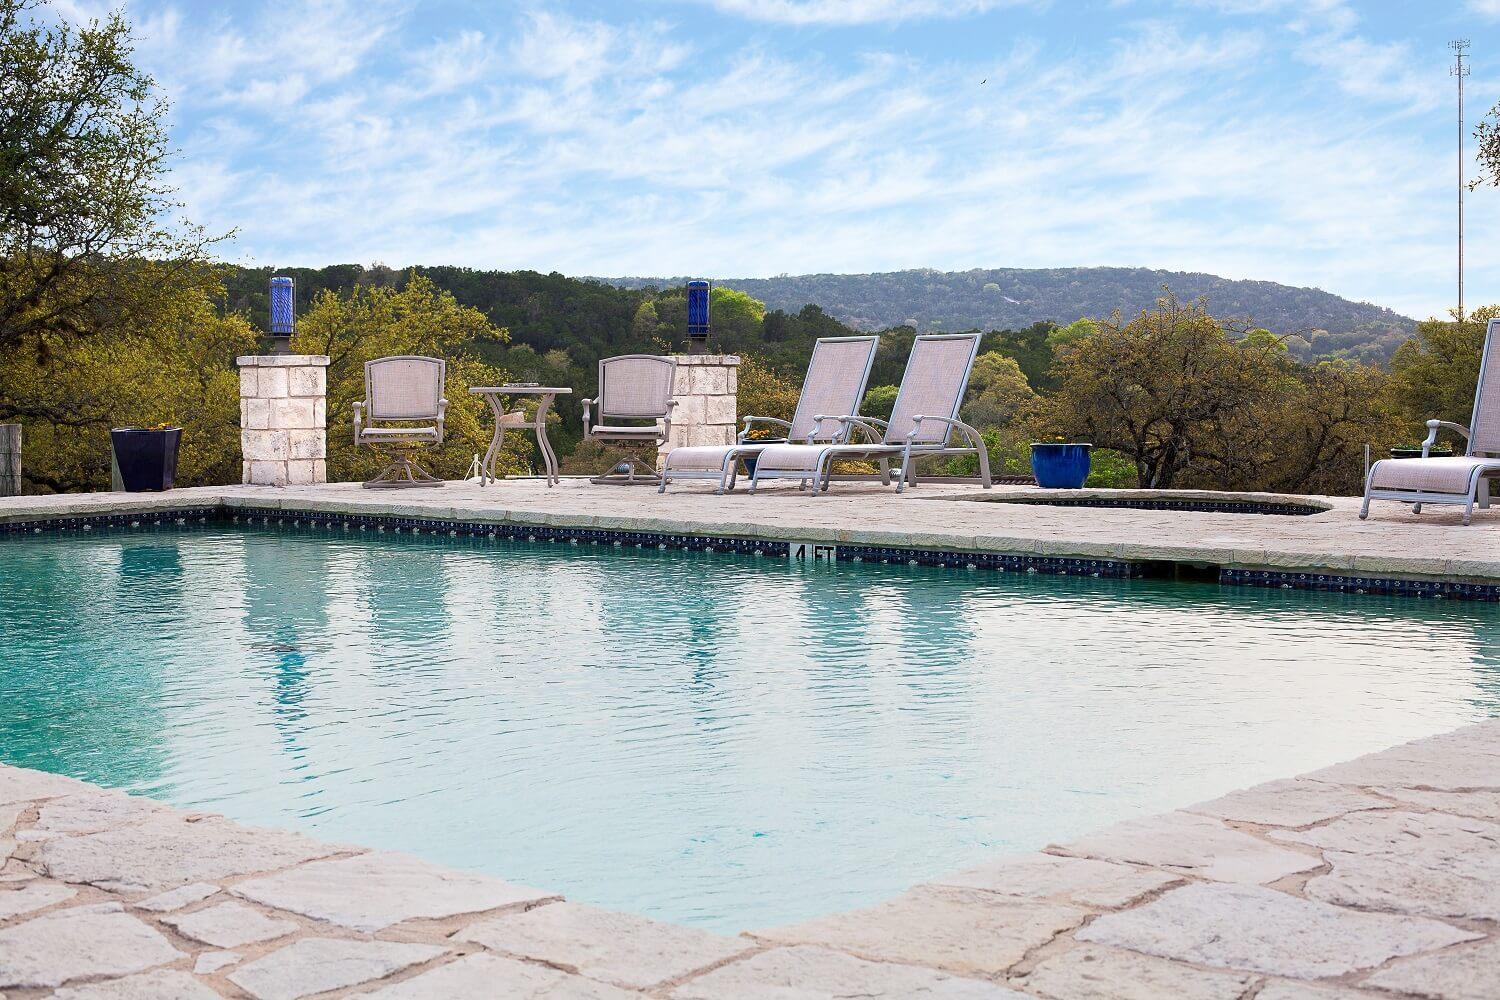 Whirlpool Outdoor Swim Spa Outdoor Pool Whirlpool Spa Blair House Inn